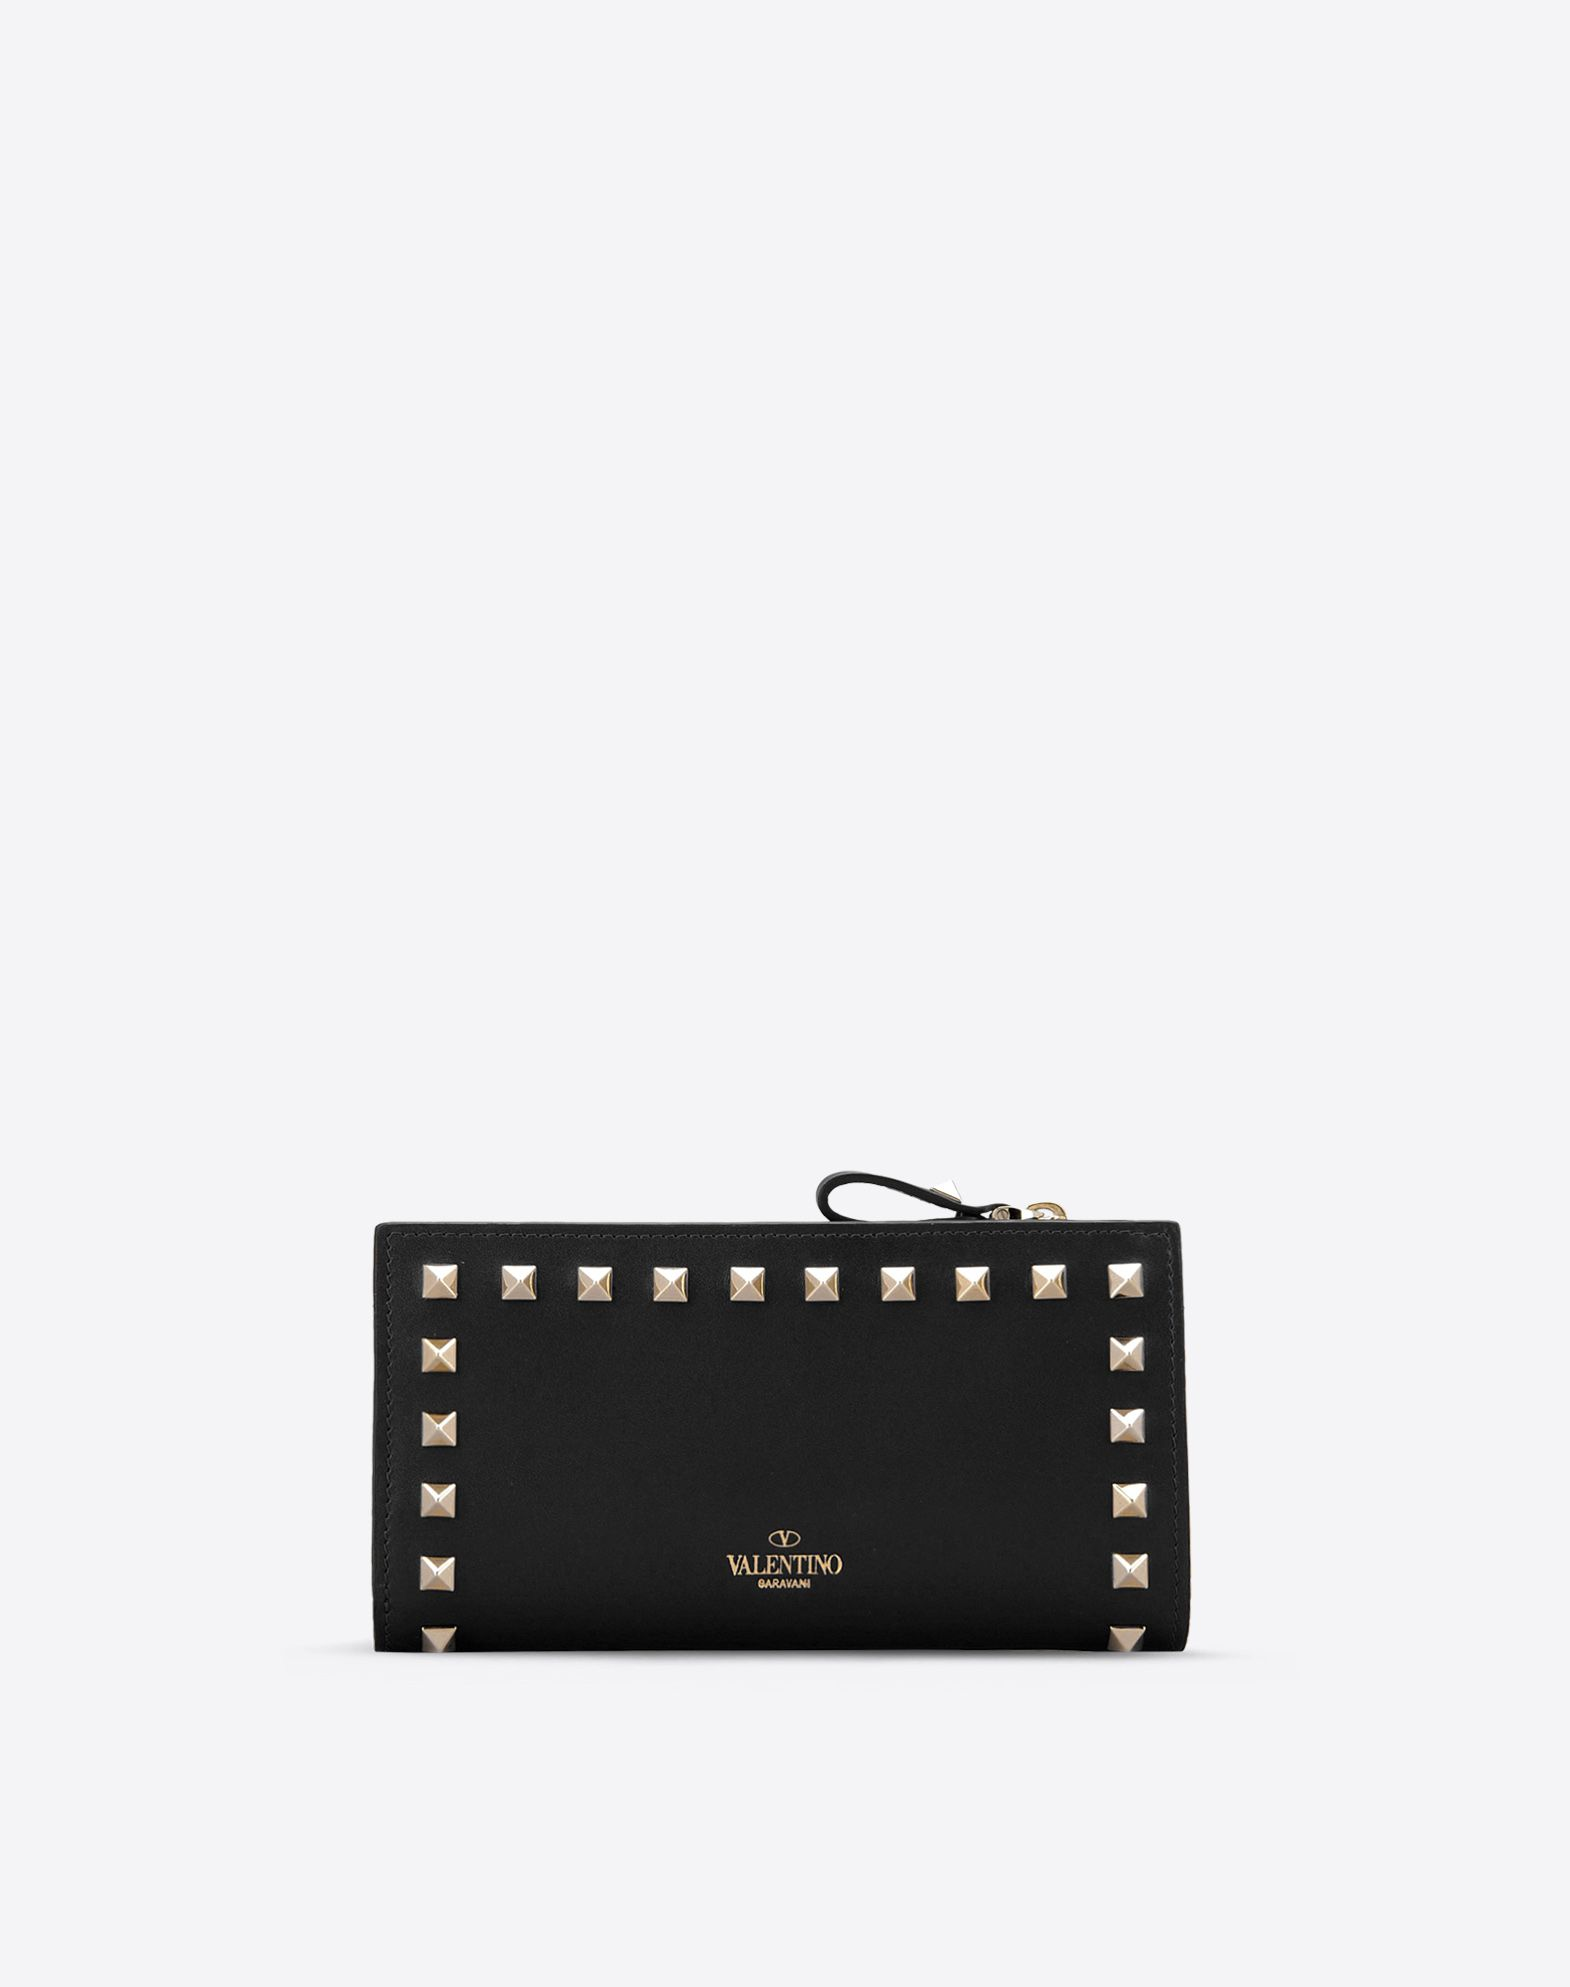 VALENTINO Solid color Internal card slots Snap button closure Logo detail Metallic inserts  46326876jt